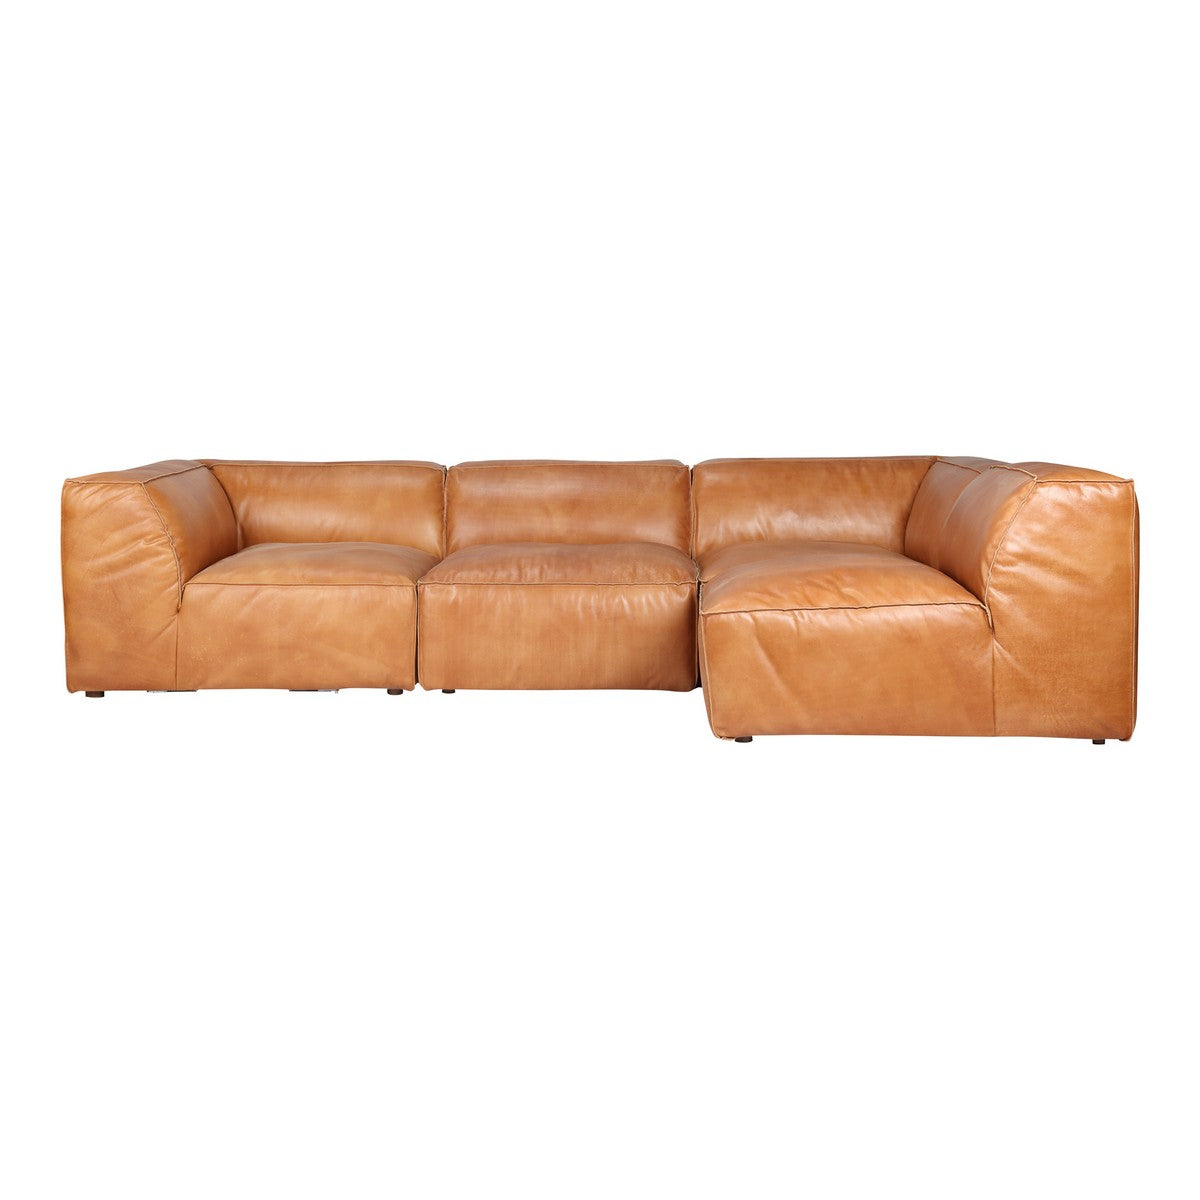 Moe's Home Collection Luxe Signature Modular Sectional Tan - QN-1022-40 - Moe's Home Collection - Extras - Minimal And Modern - 1